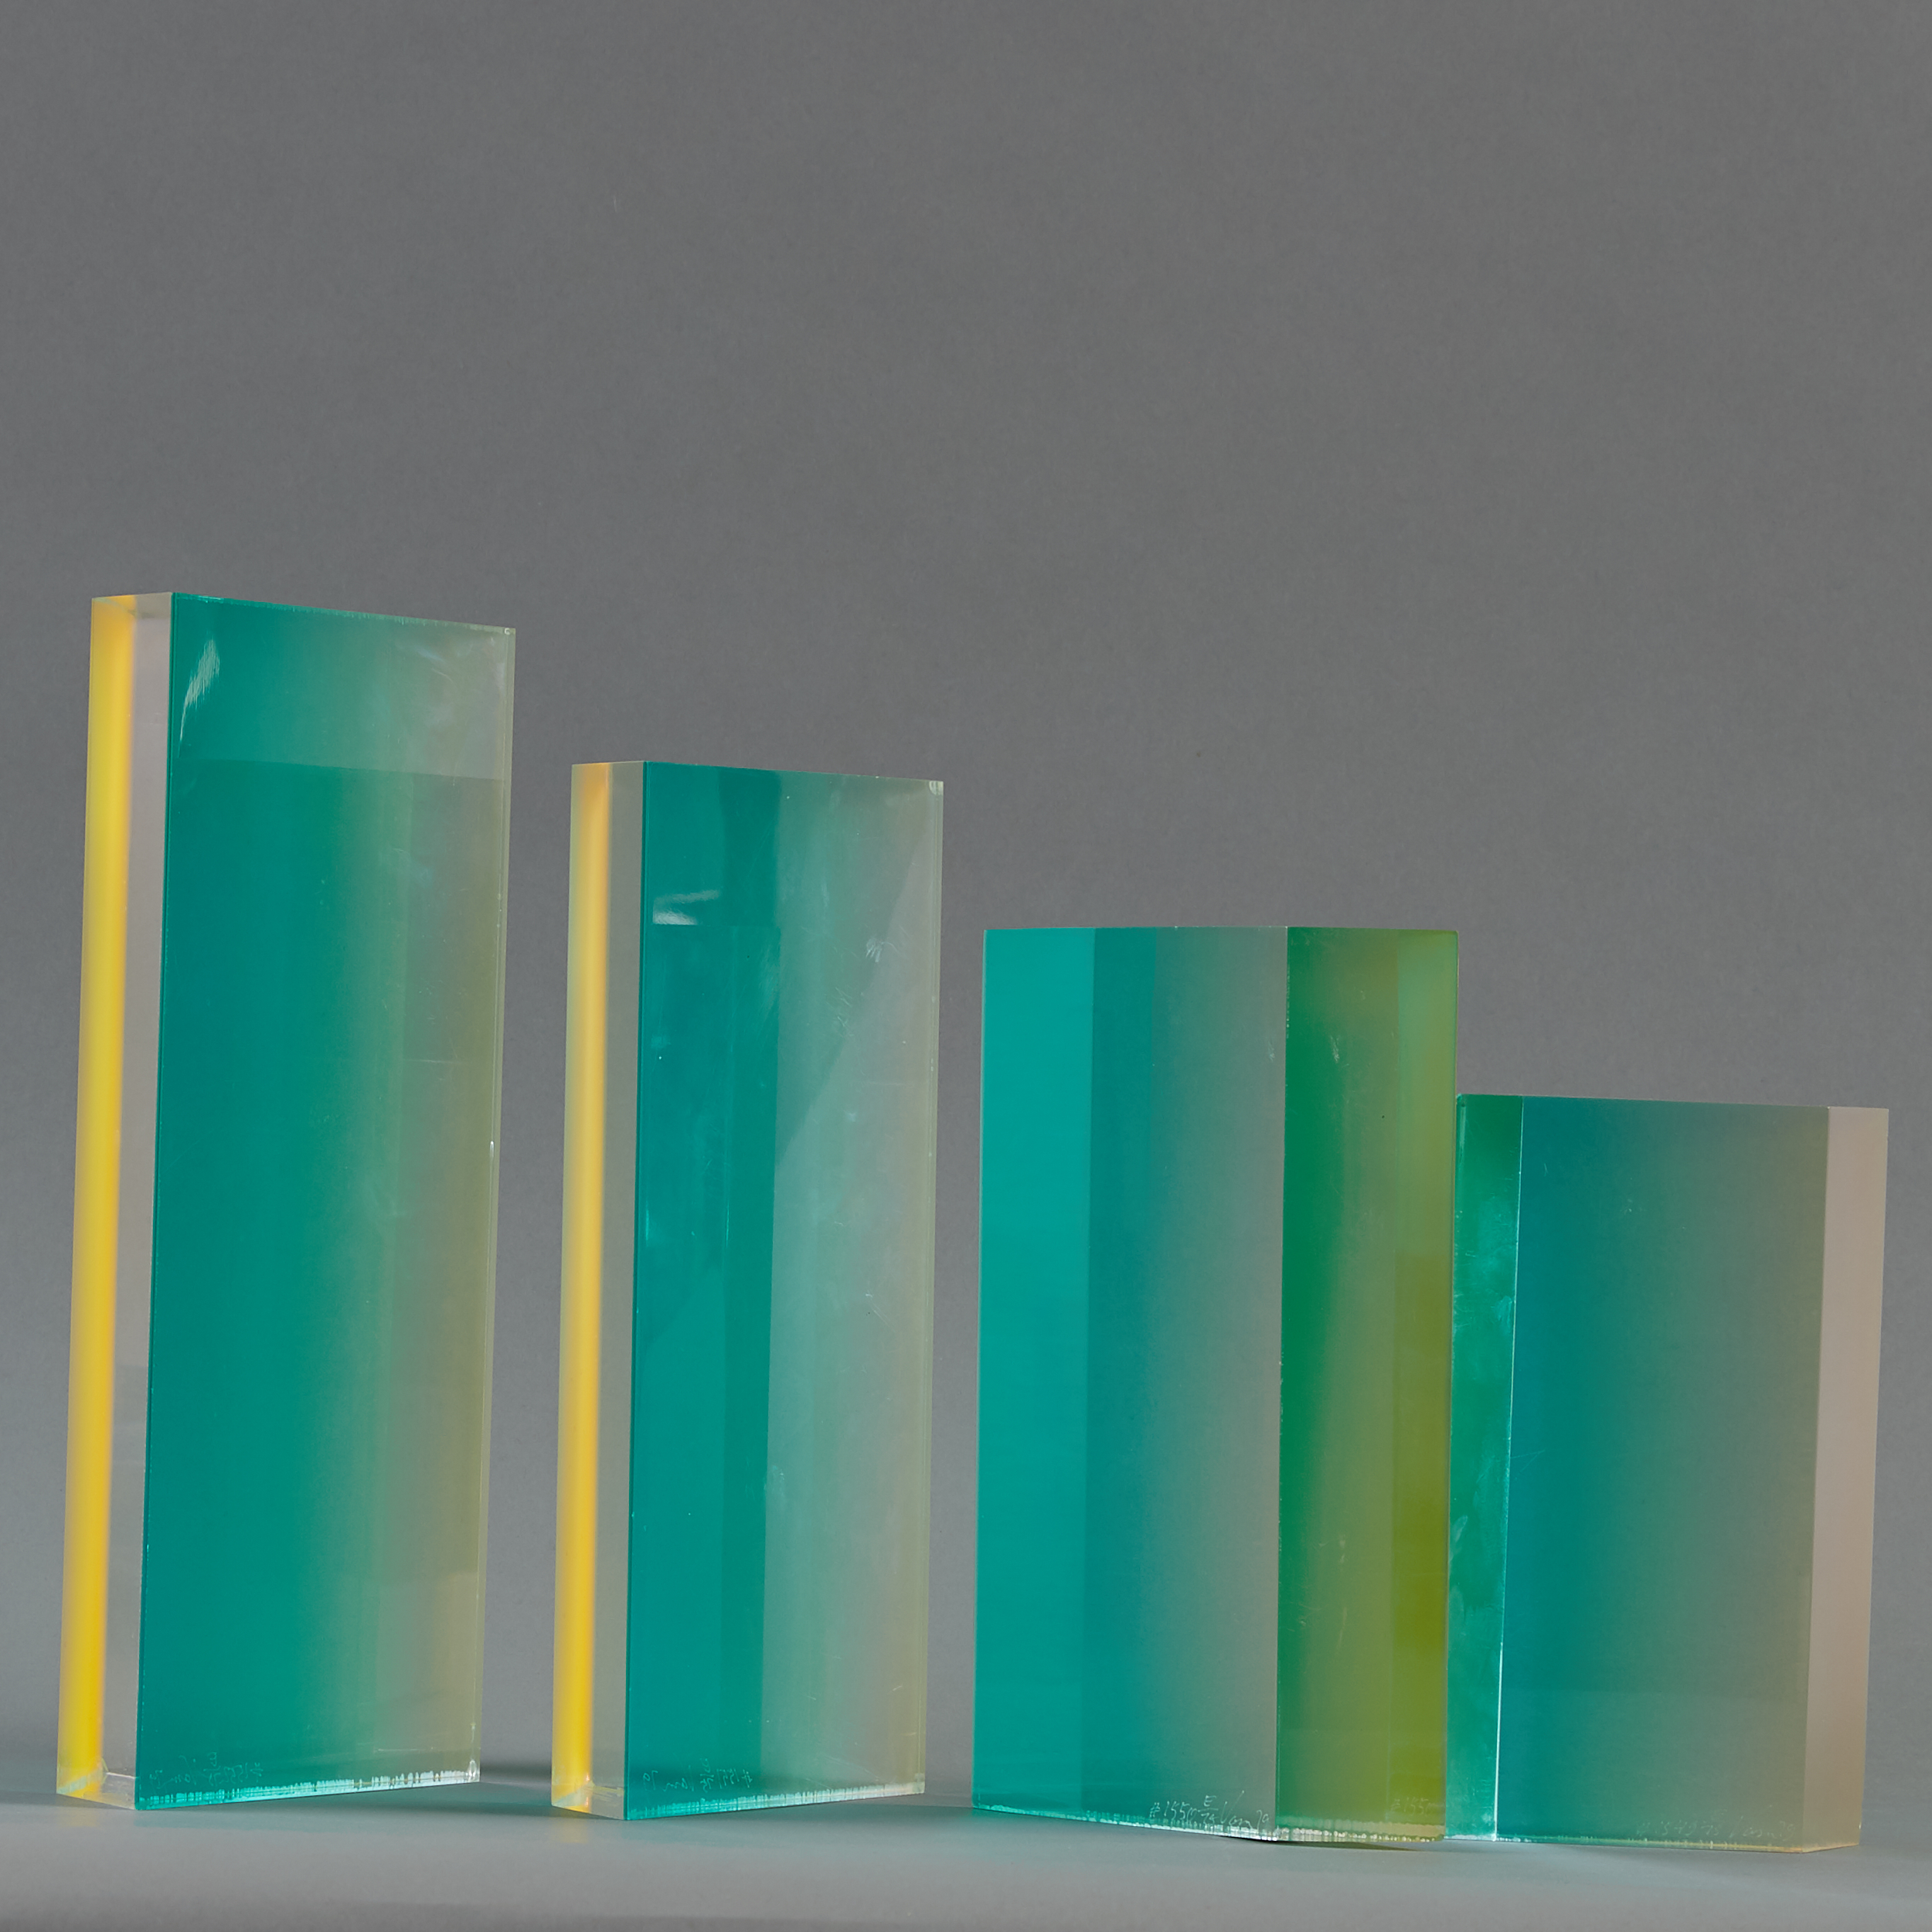 Lot 85 - Group of 4 Velizar Mihich VASA Acrylic Sculptures